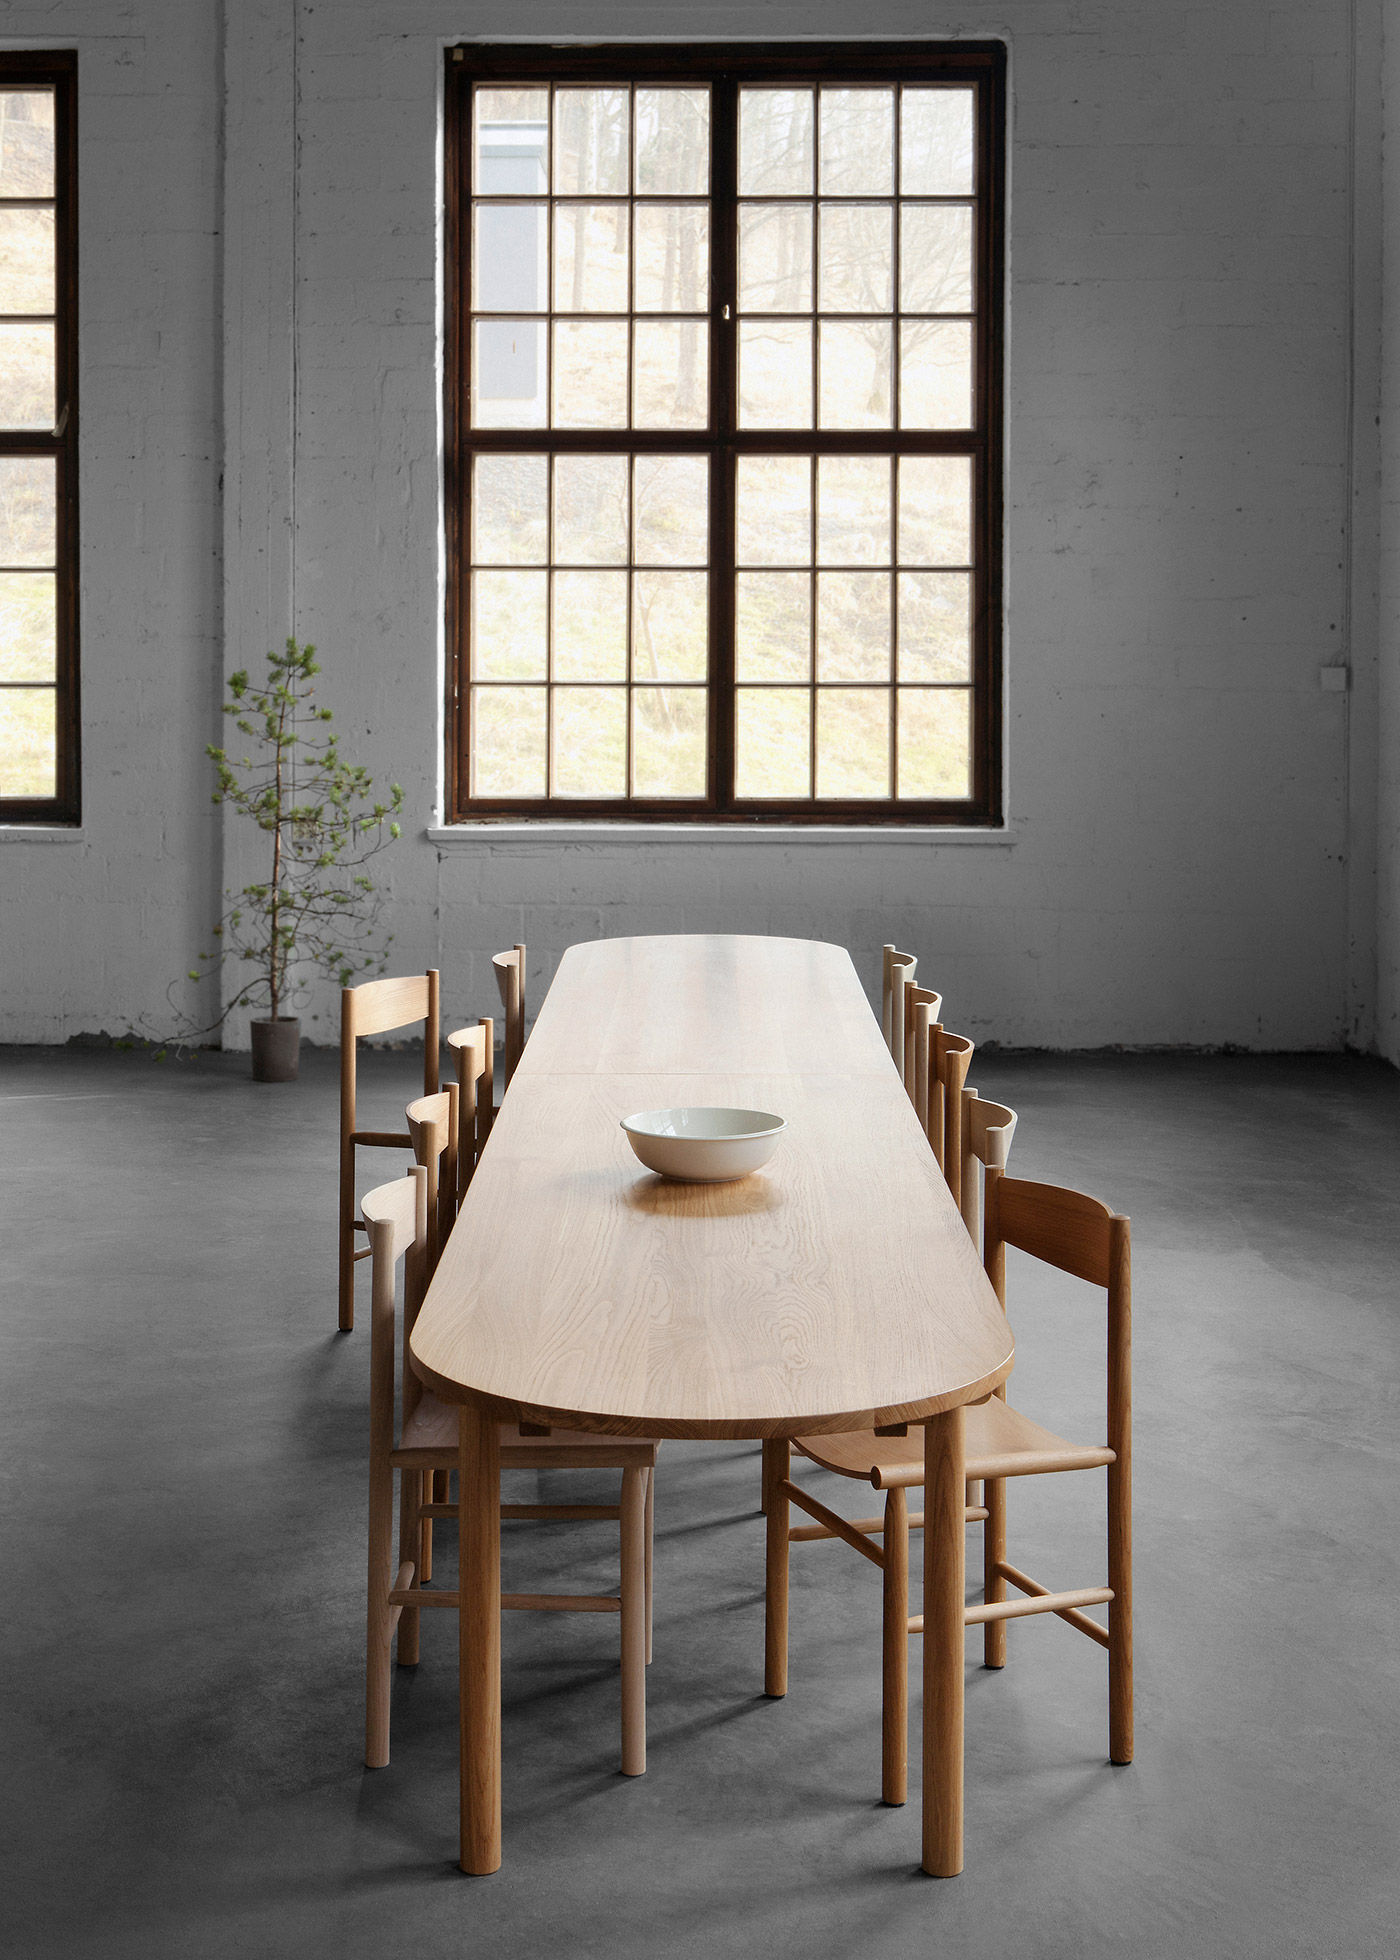 Long wooden oak dining table and chair in industrial space